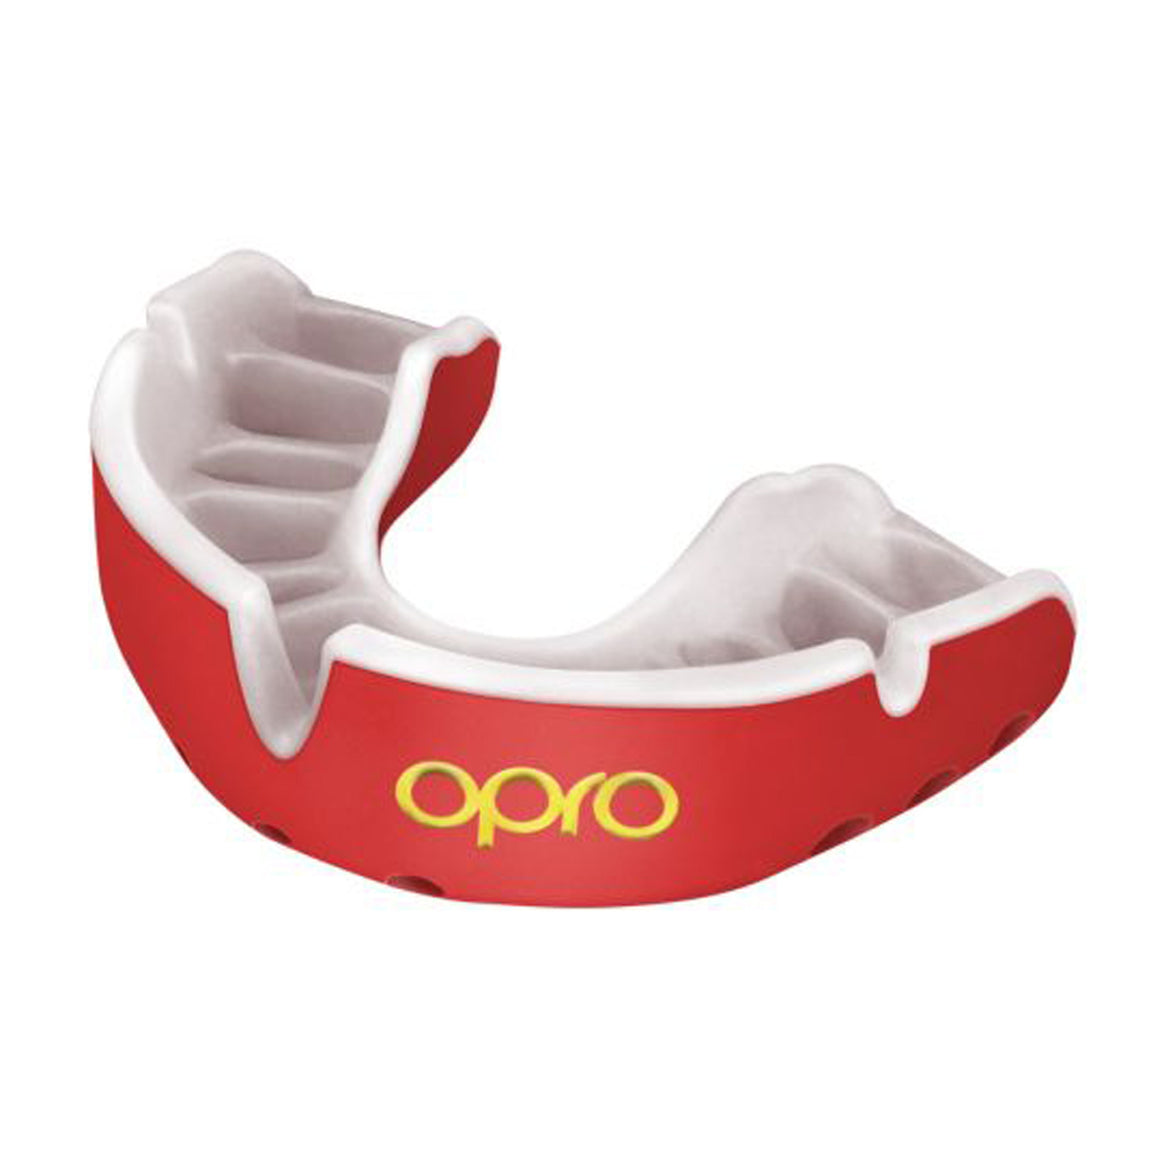 Gold Mouth Guard for Adults and Juniors in Red & White